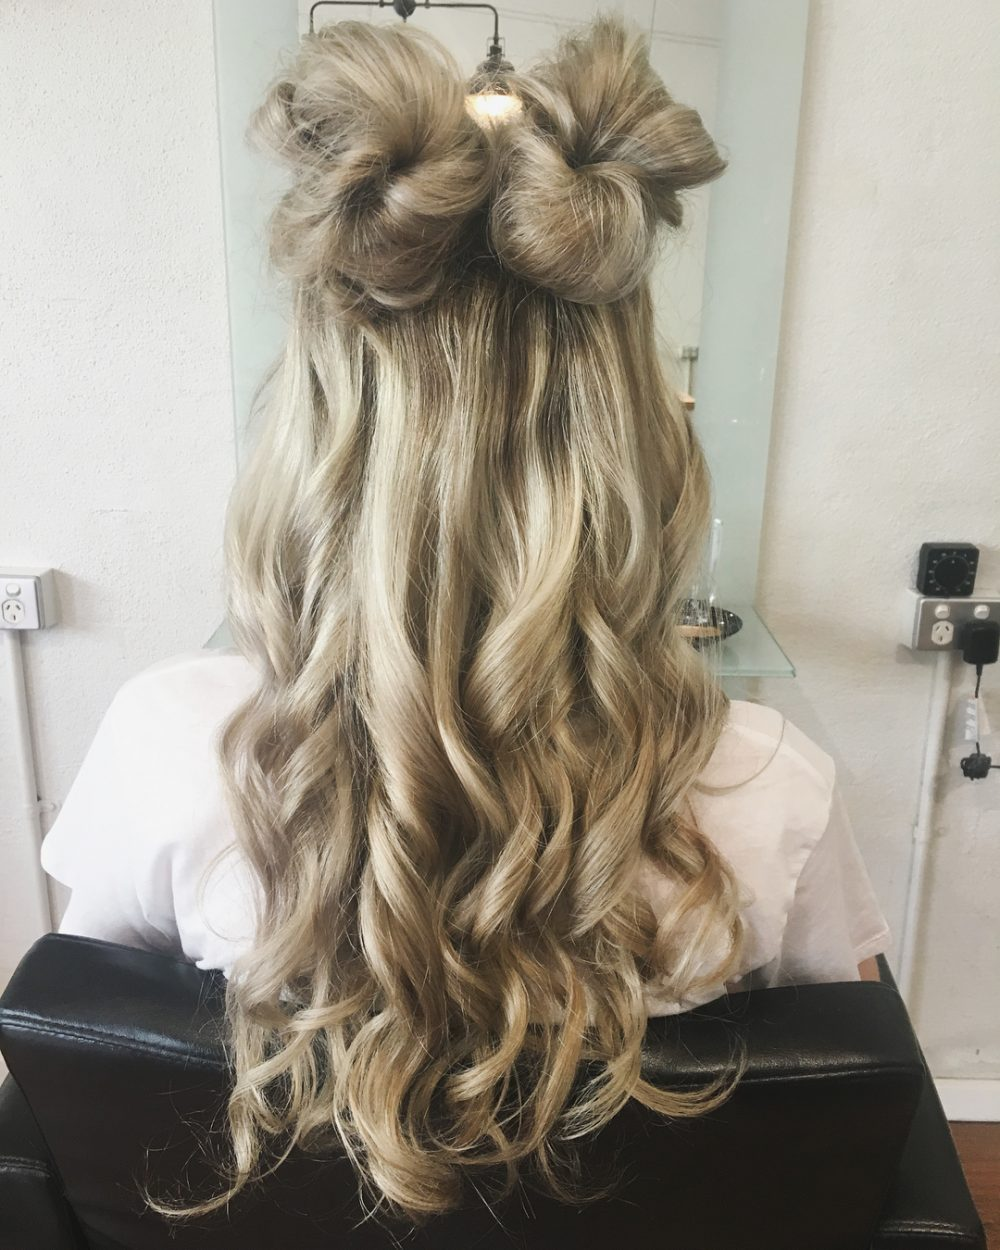 38 ridiculously cute hairstyles for long hair (popular in 2018)